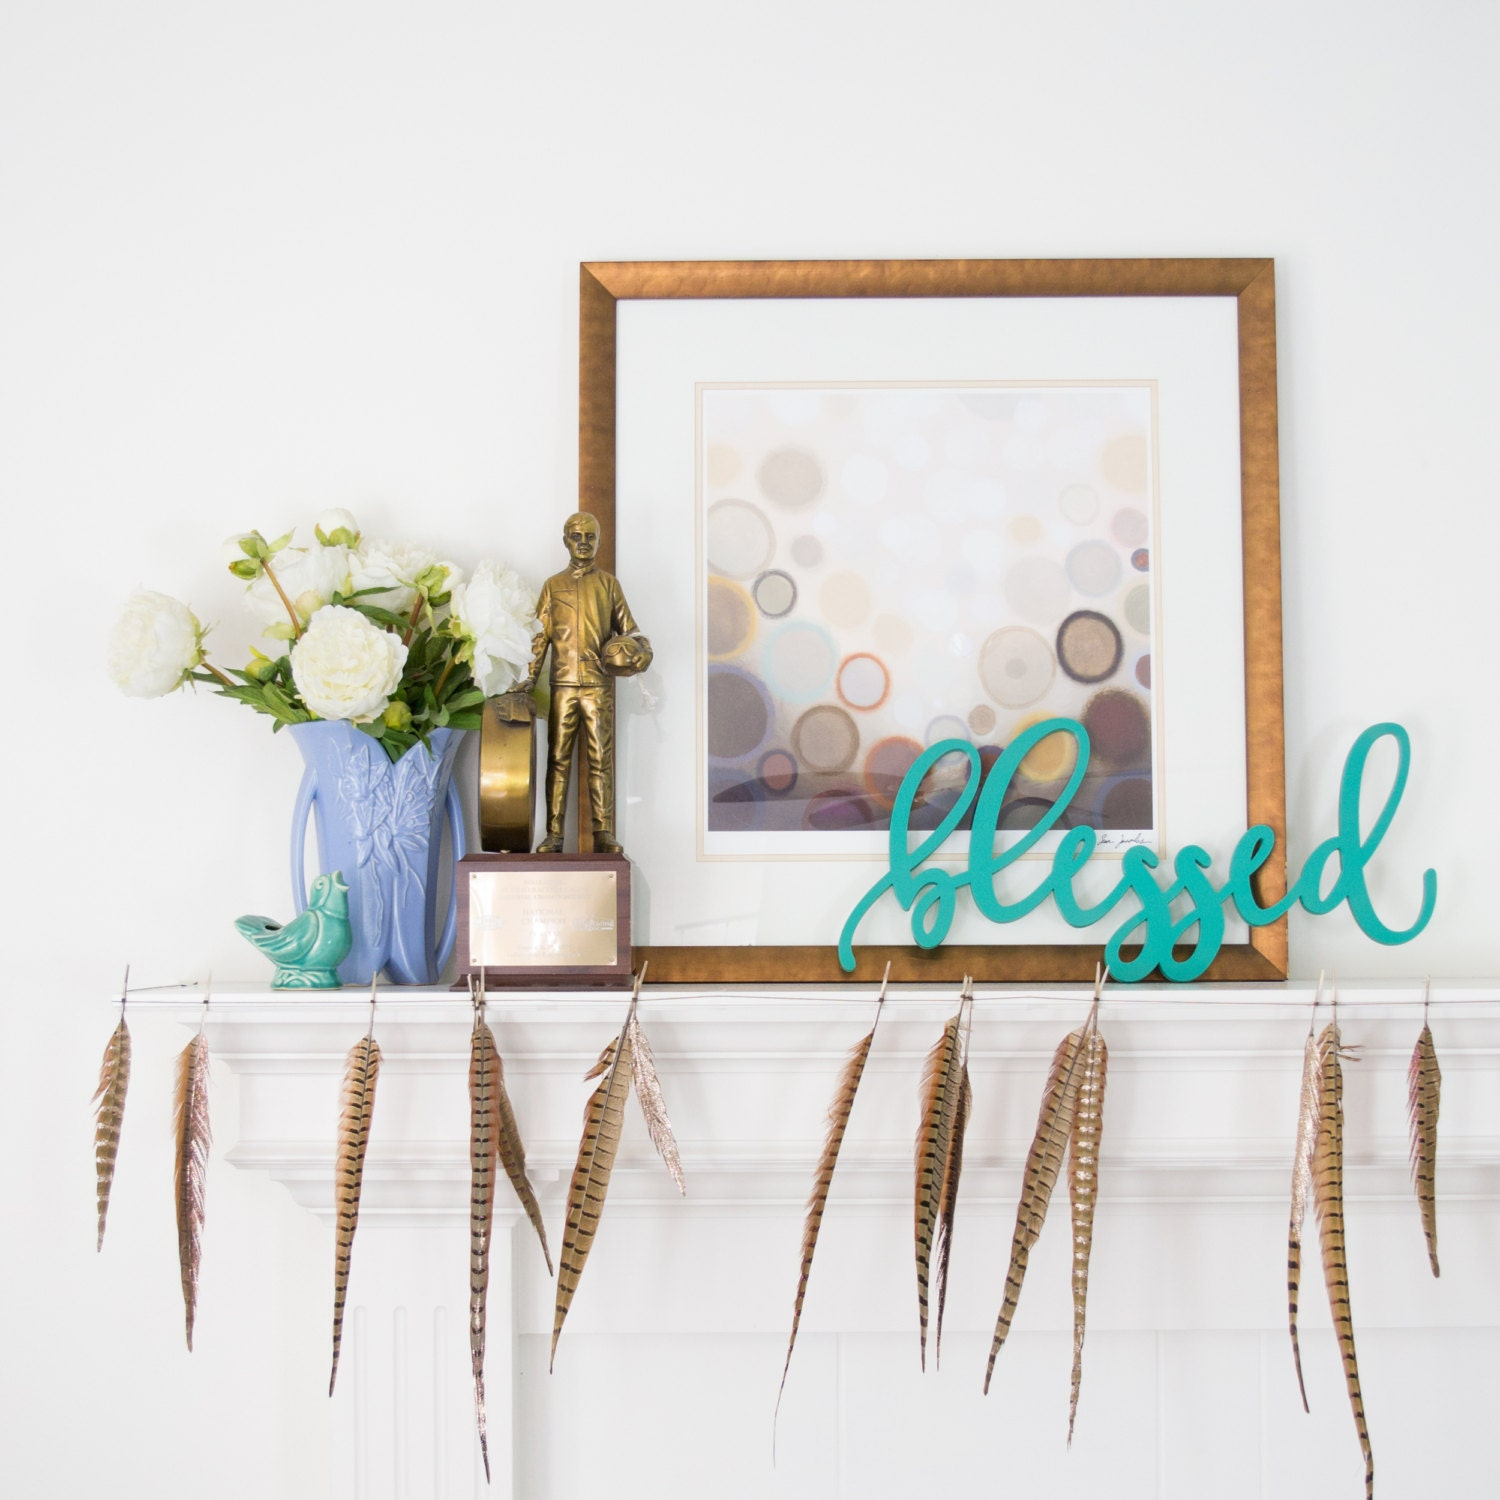 Blessed wood wall words sign custom wooden word sign wood zoom amipublicfo Choice Image